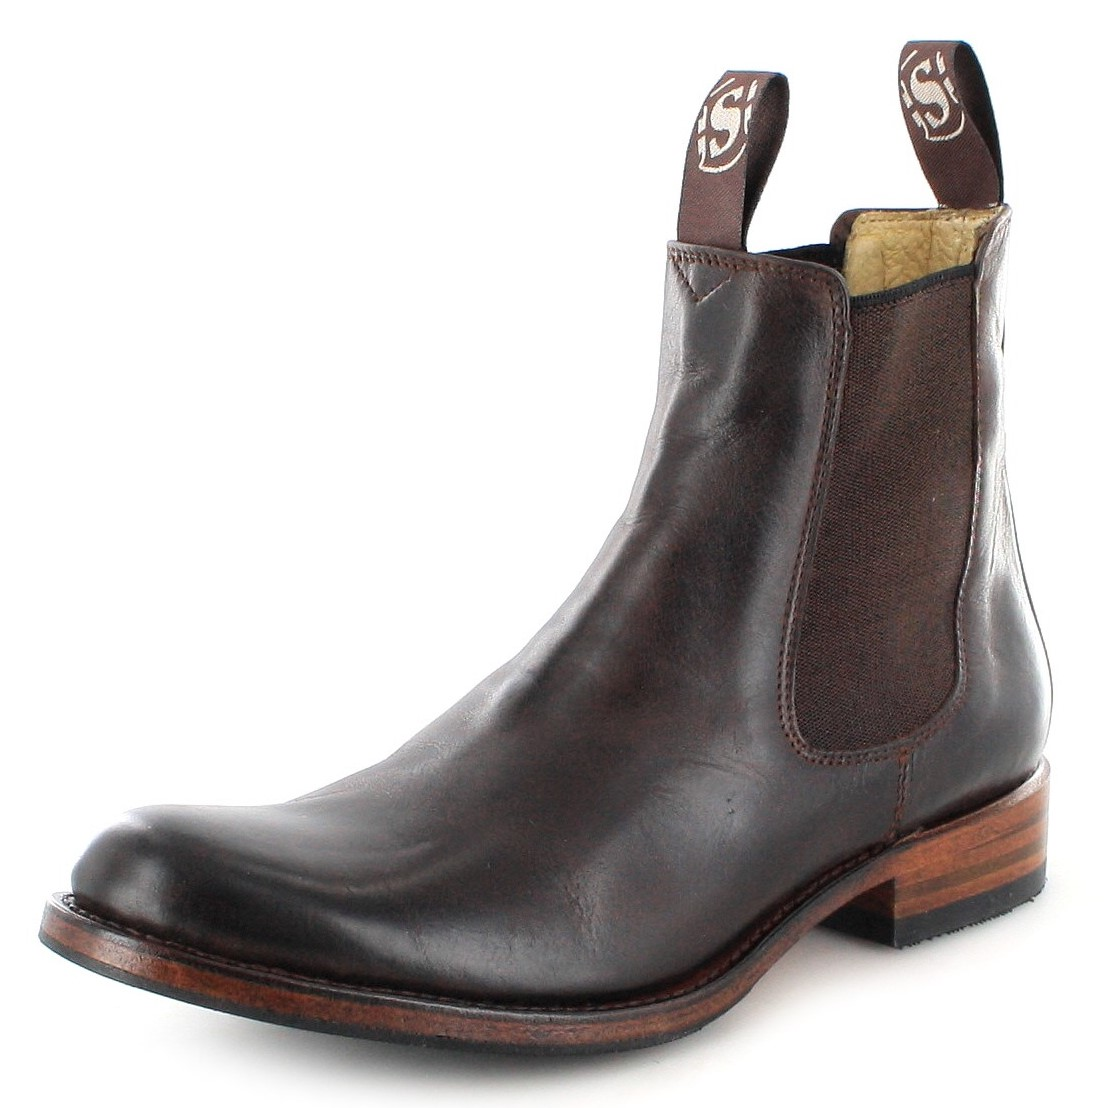 Sendra Boots 5595 Marron Chelsea ankle boot brown